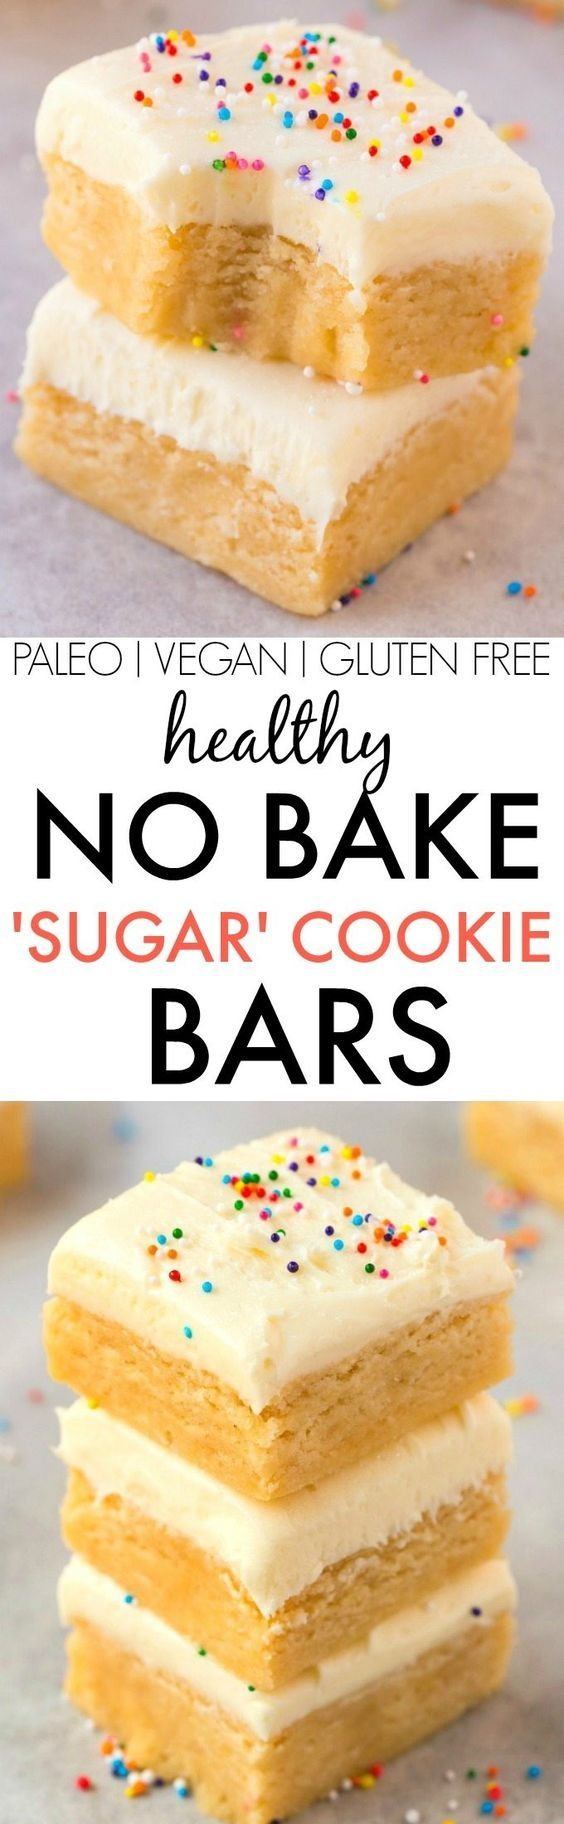 Healthy no-bake 'sugar' cookie bars | http://www.hercampus.com/school/emerson/sweet-and-healthy-desserts